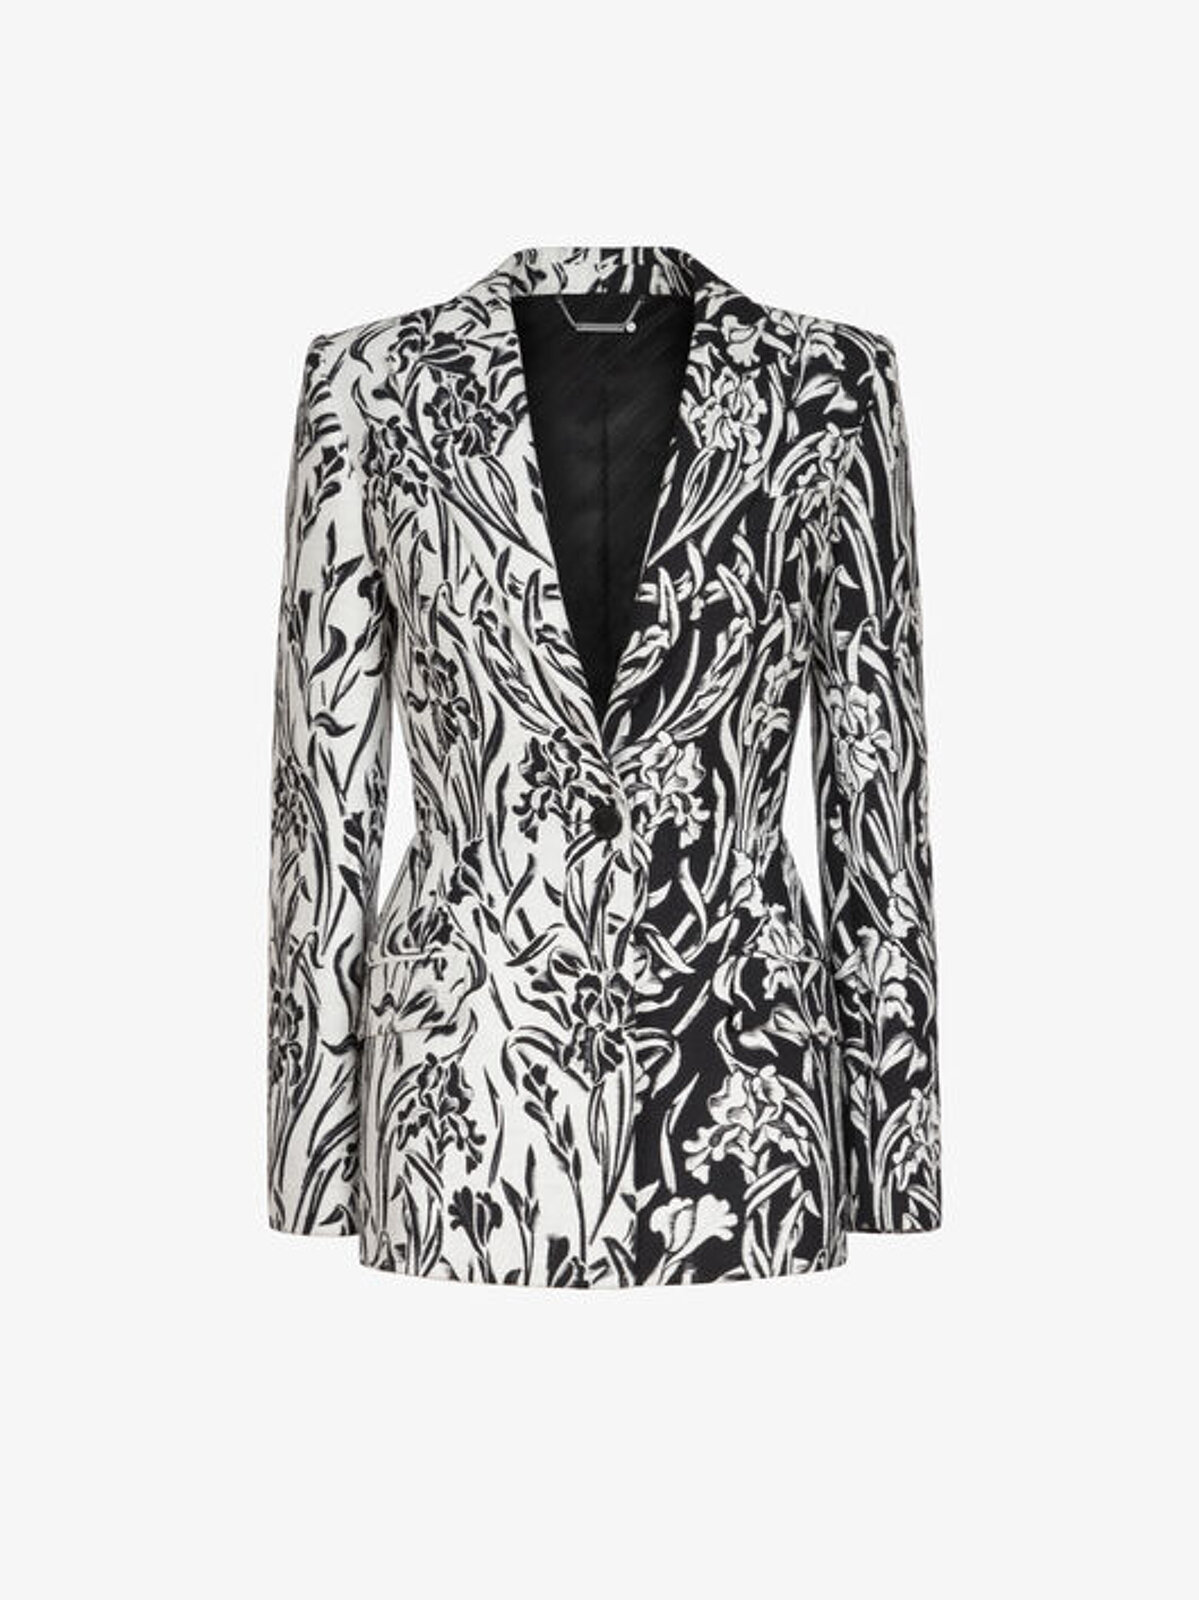 Giacca In Jacquard Floreale Bicolore - Givenchy